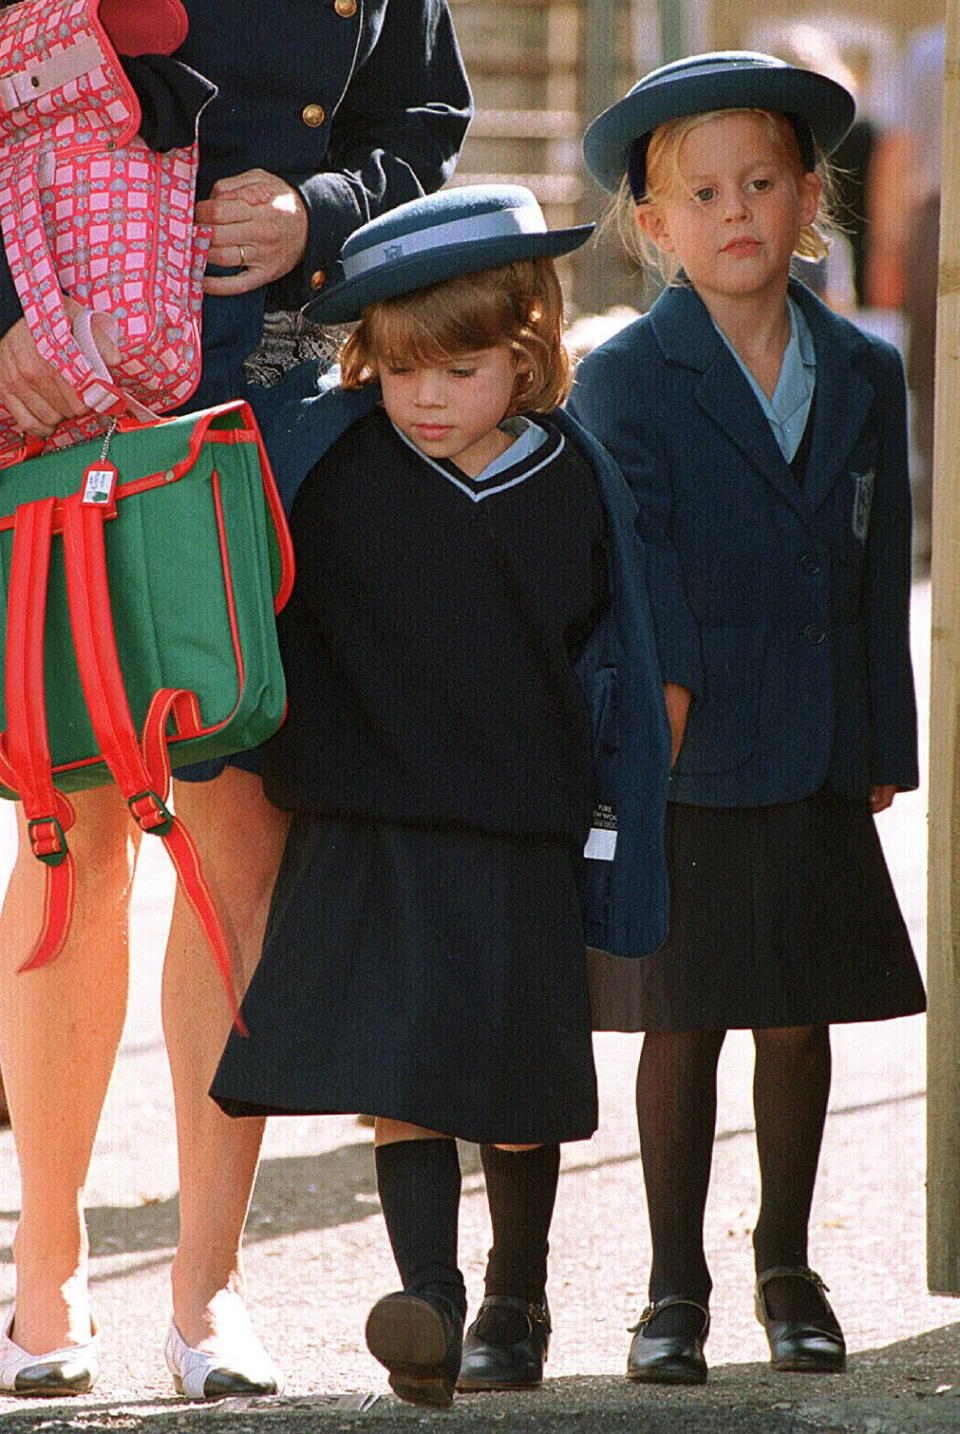 WINDSOR, UNITED KINGDOM - SEPTEMBER 07:  Princess Eugenie's First Day At Upton House School In Windsor. Her Sister, Princess Beatrice, Accompanies Her.  (Photo by Tim Graham Photo Library via Getty Images)